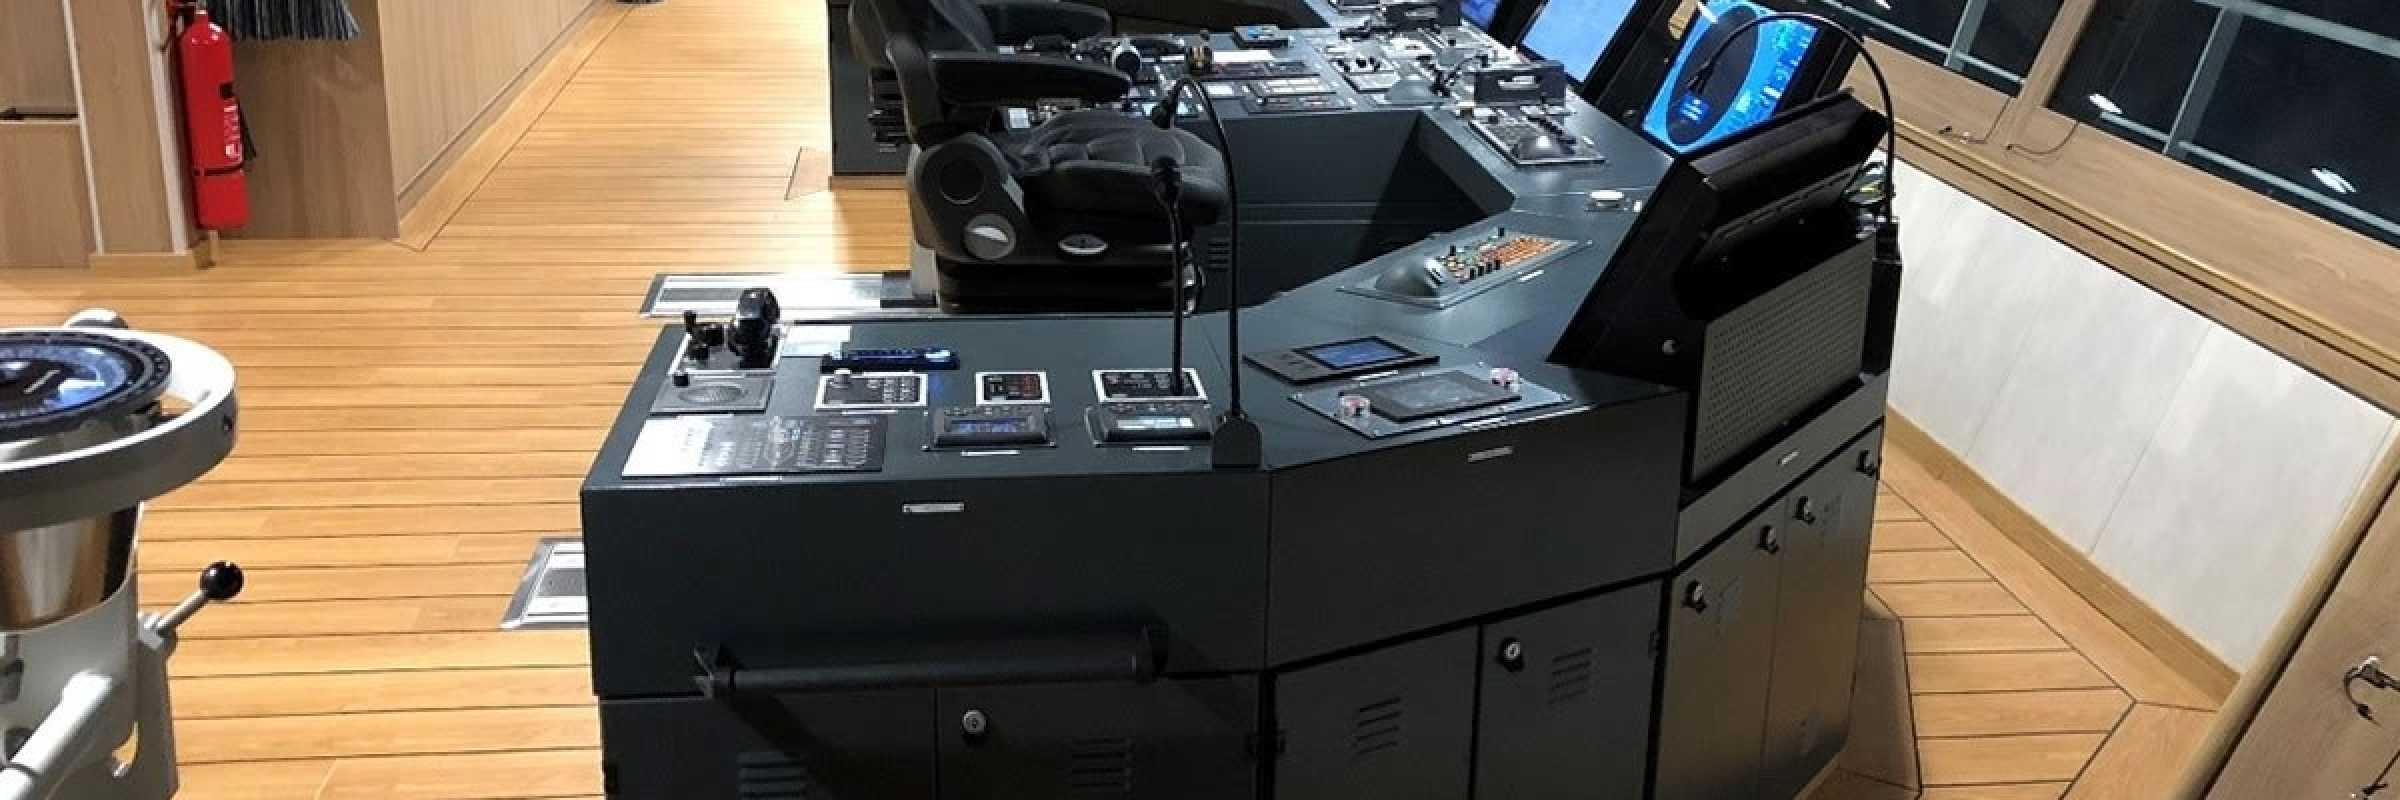 Sea IT delivers complete ICT solutions to Älvtanks new vessels